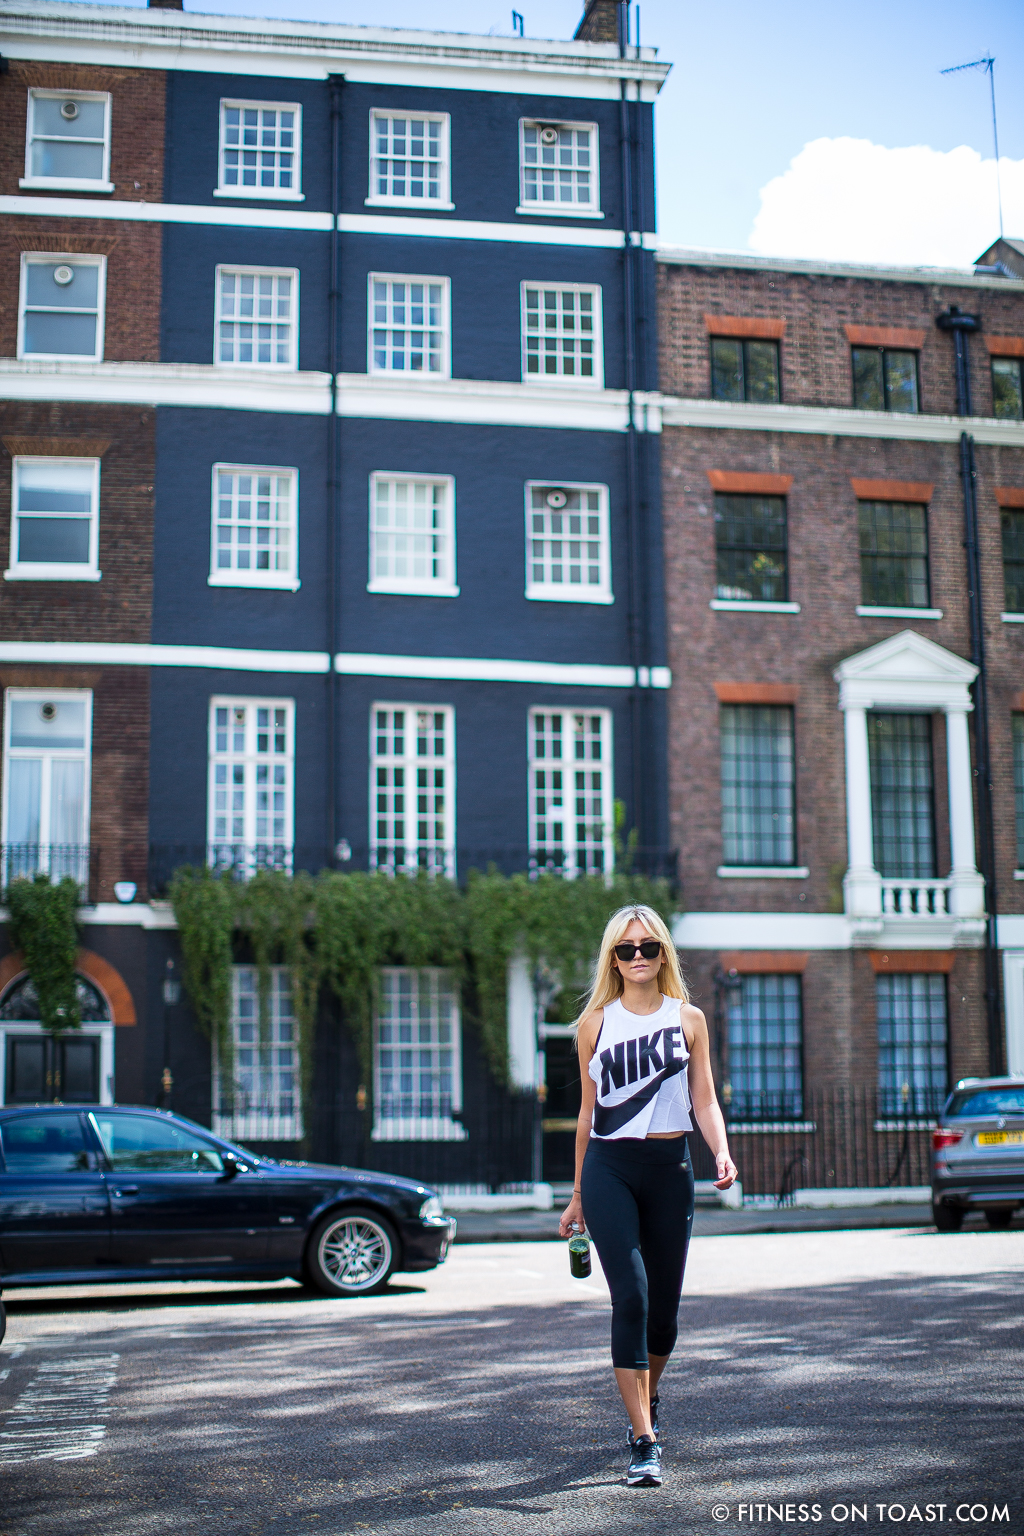 Fitness On Toast Faya Blog Girl London Urban Outfitters Fashion Nike Post OOTD Workout Uniform Outfit Clothes-16